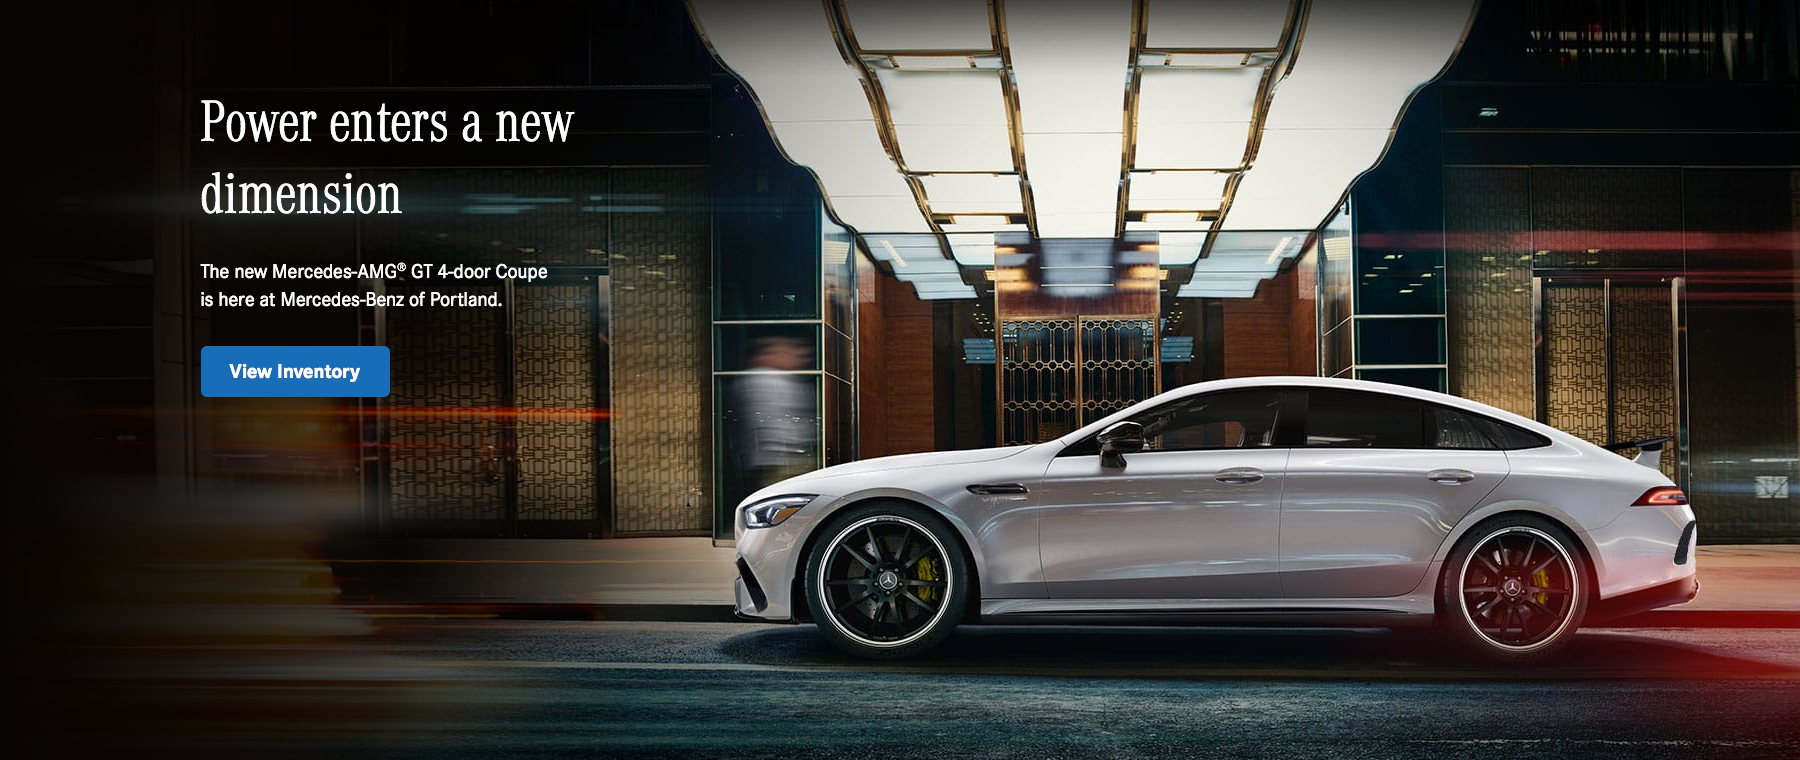 Power enters a new dimension Mercedes-AMG GT